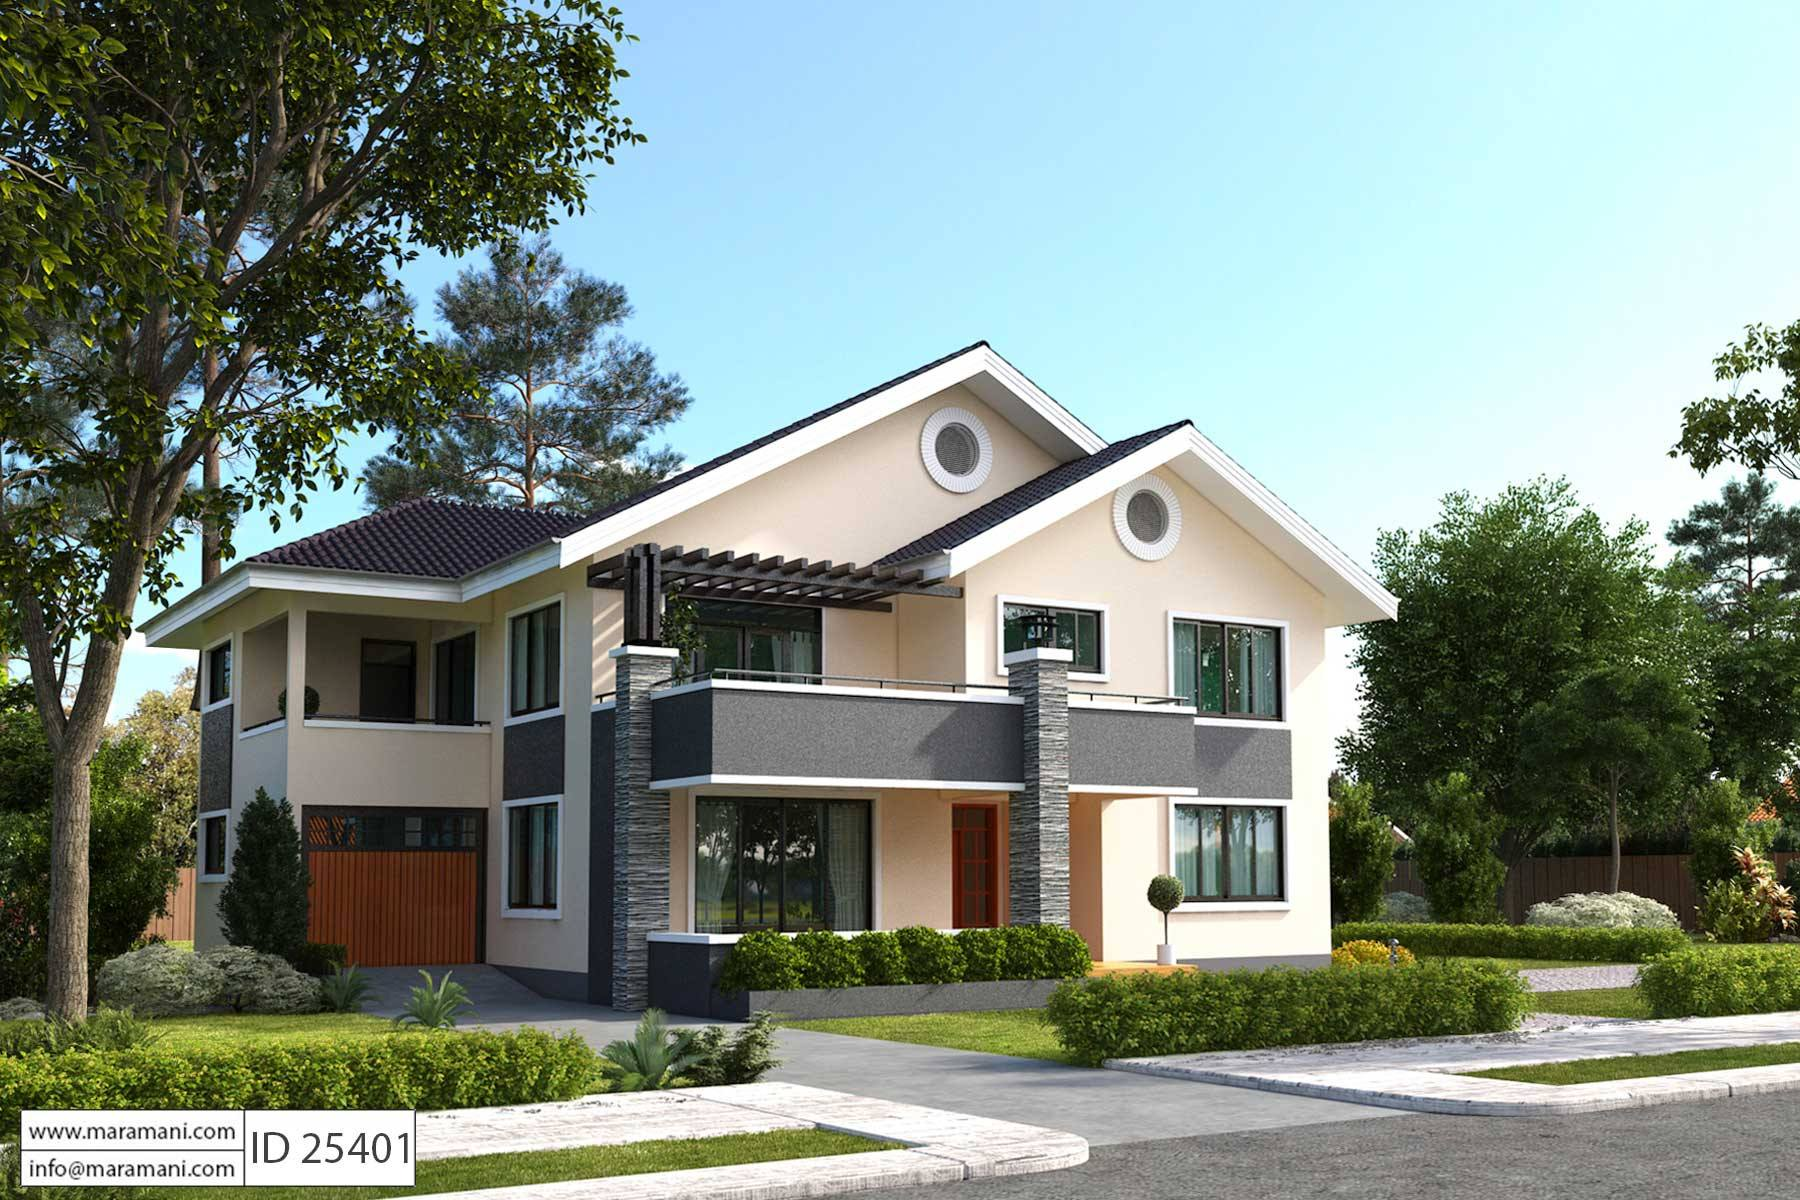 5 bedroom house plan id 25401 floor plans by maramani for Looking for a 4 bedroom